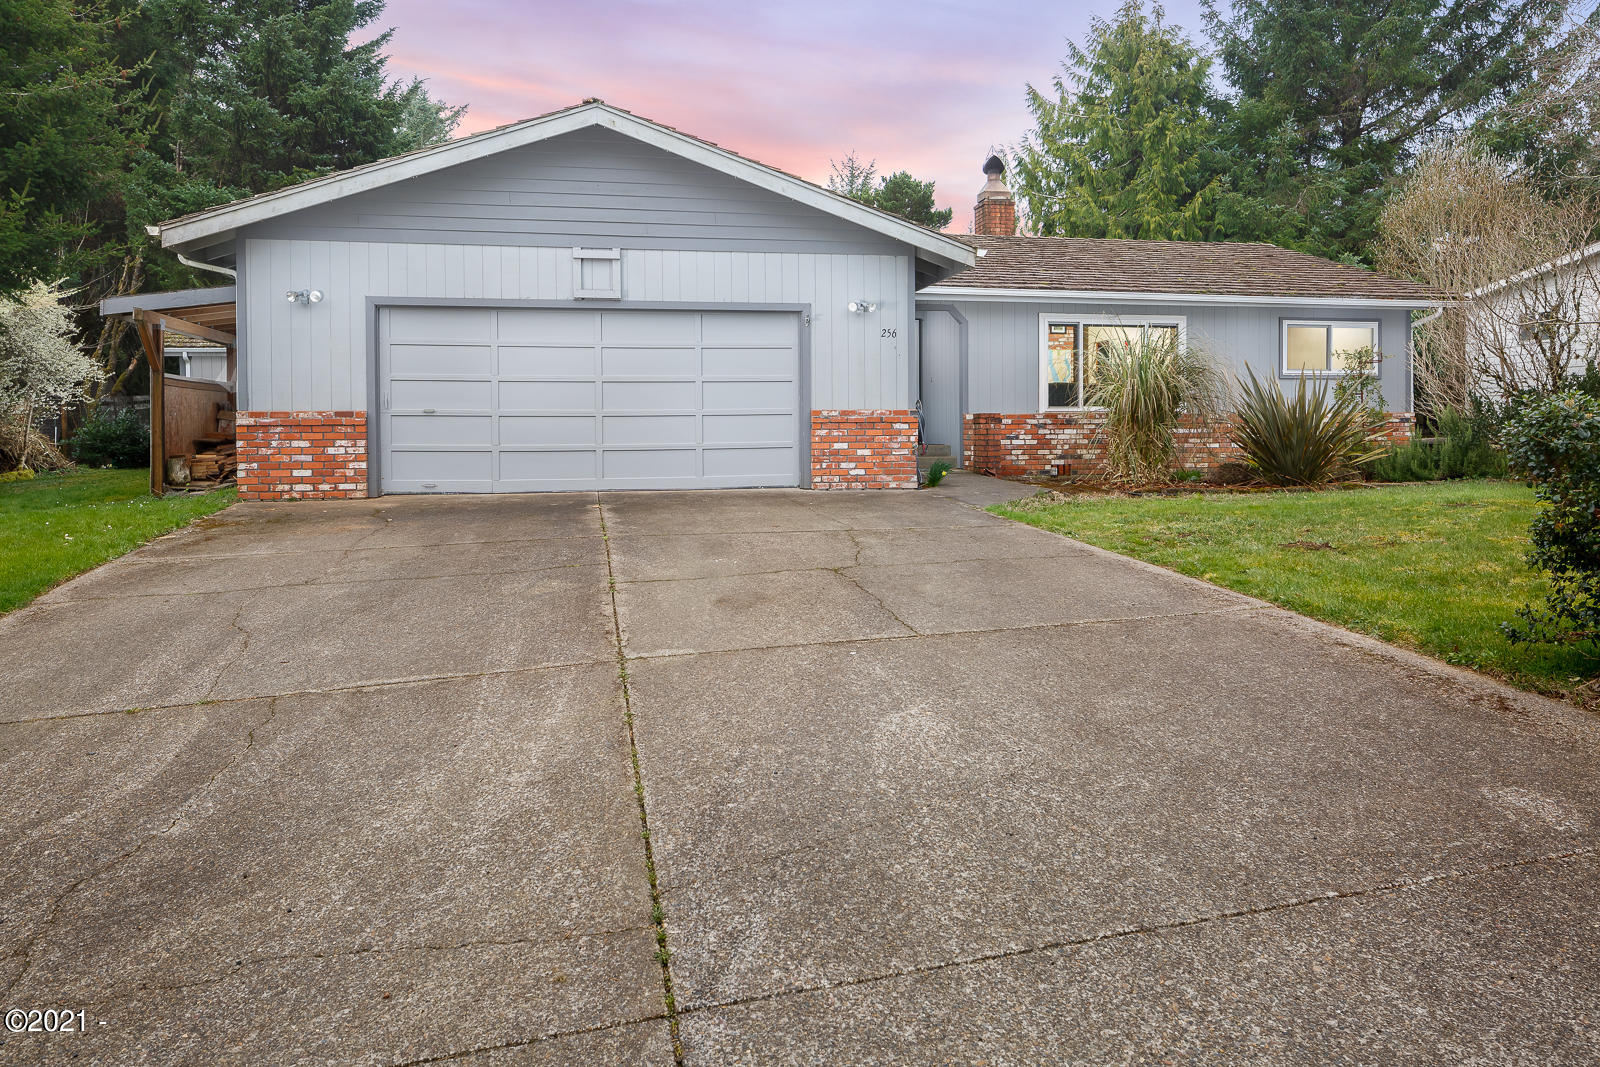 256 NE 56th Ct, Newport, OR 97365 - 256 NE 56th Ct. Newport